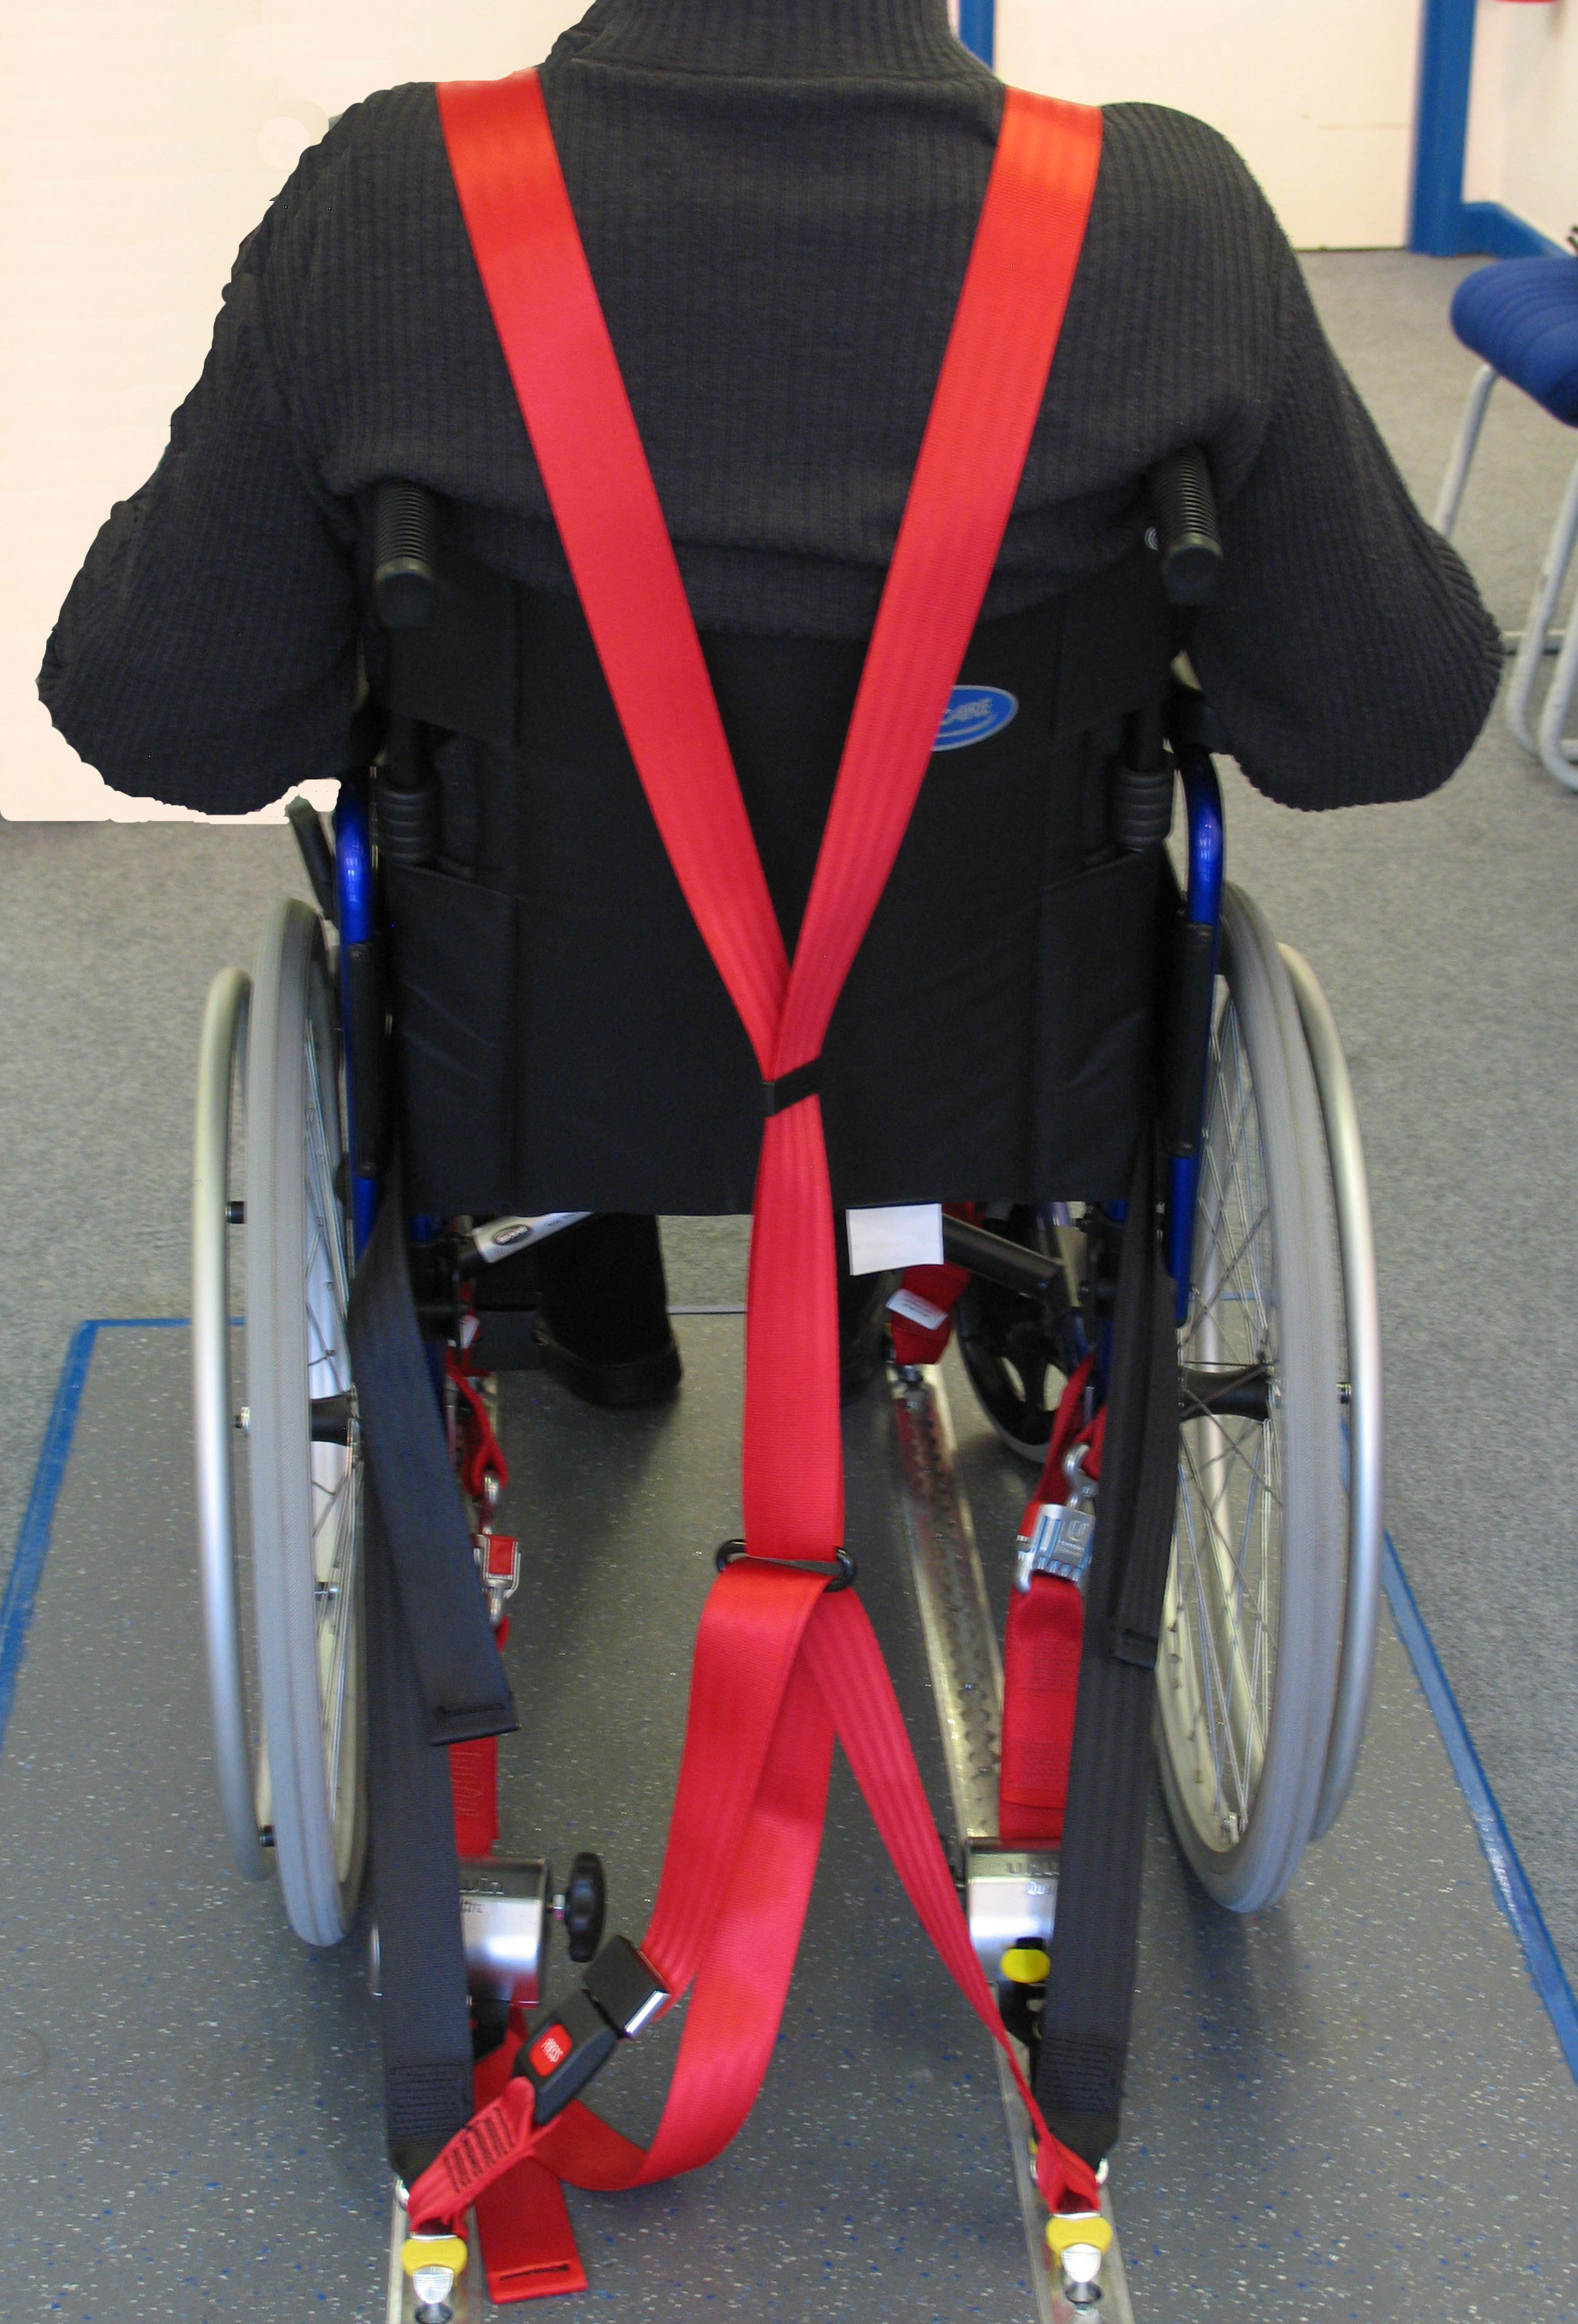 wheelchair harness big lots rocking chair cushions parfit mobility experts for cars in ireland ccessi